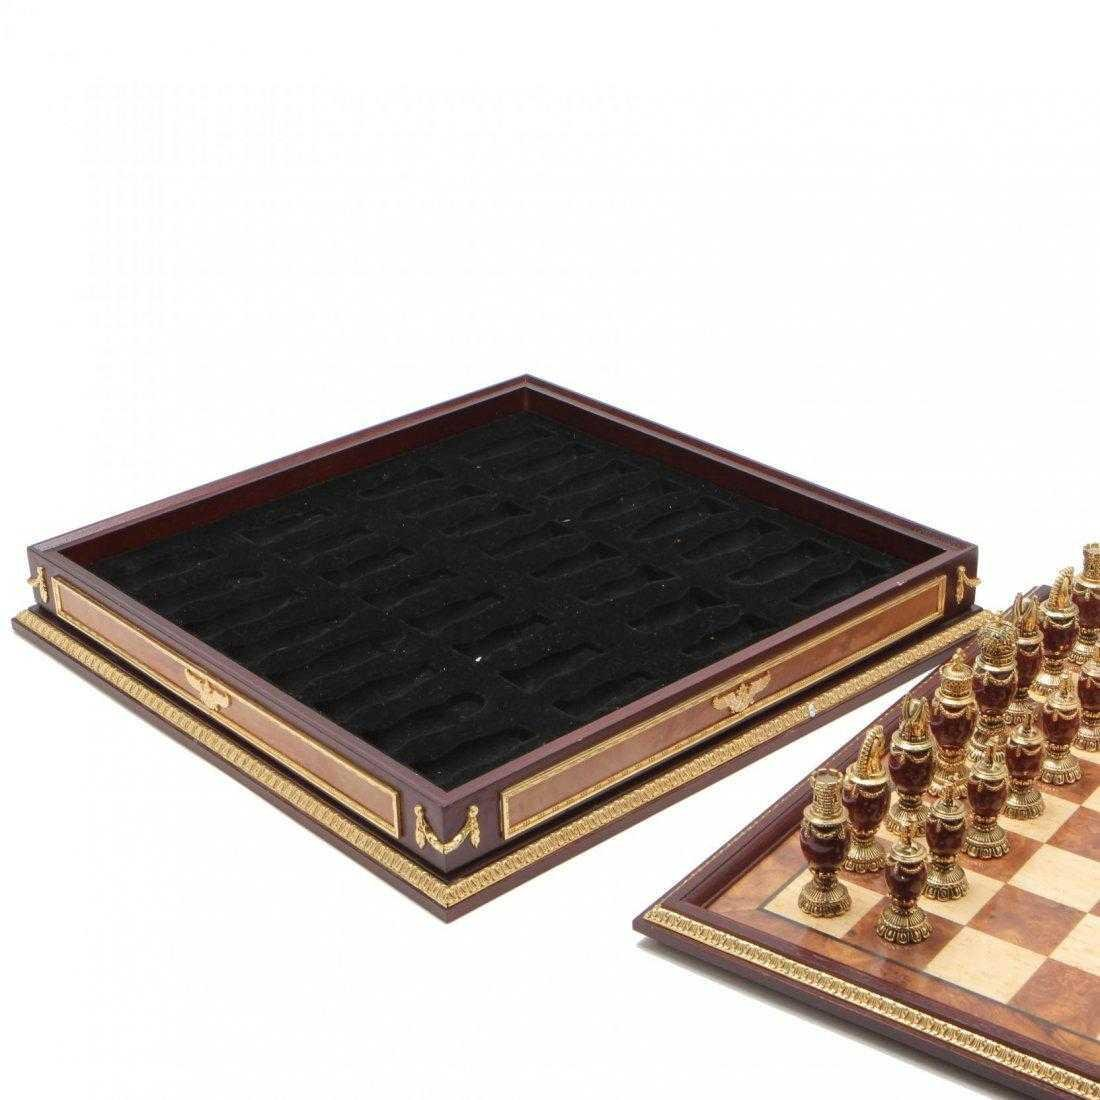 Faberge Imperial Jeweled Chess / Board Limited Edition - 2